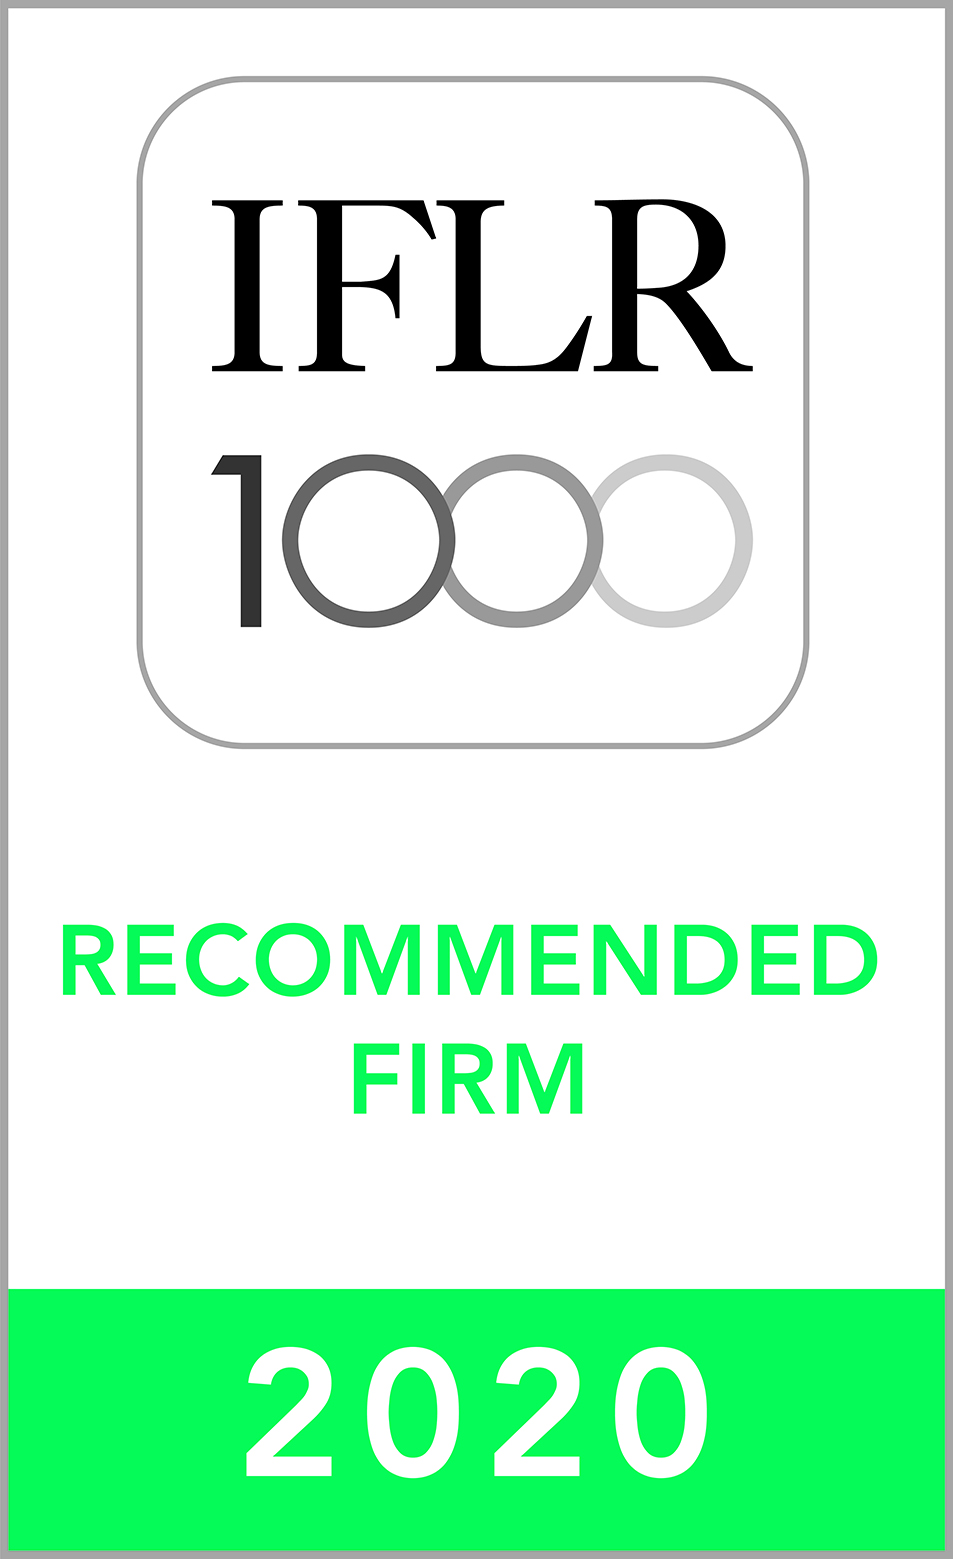 Recommended Firm 2020